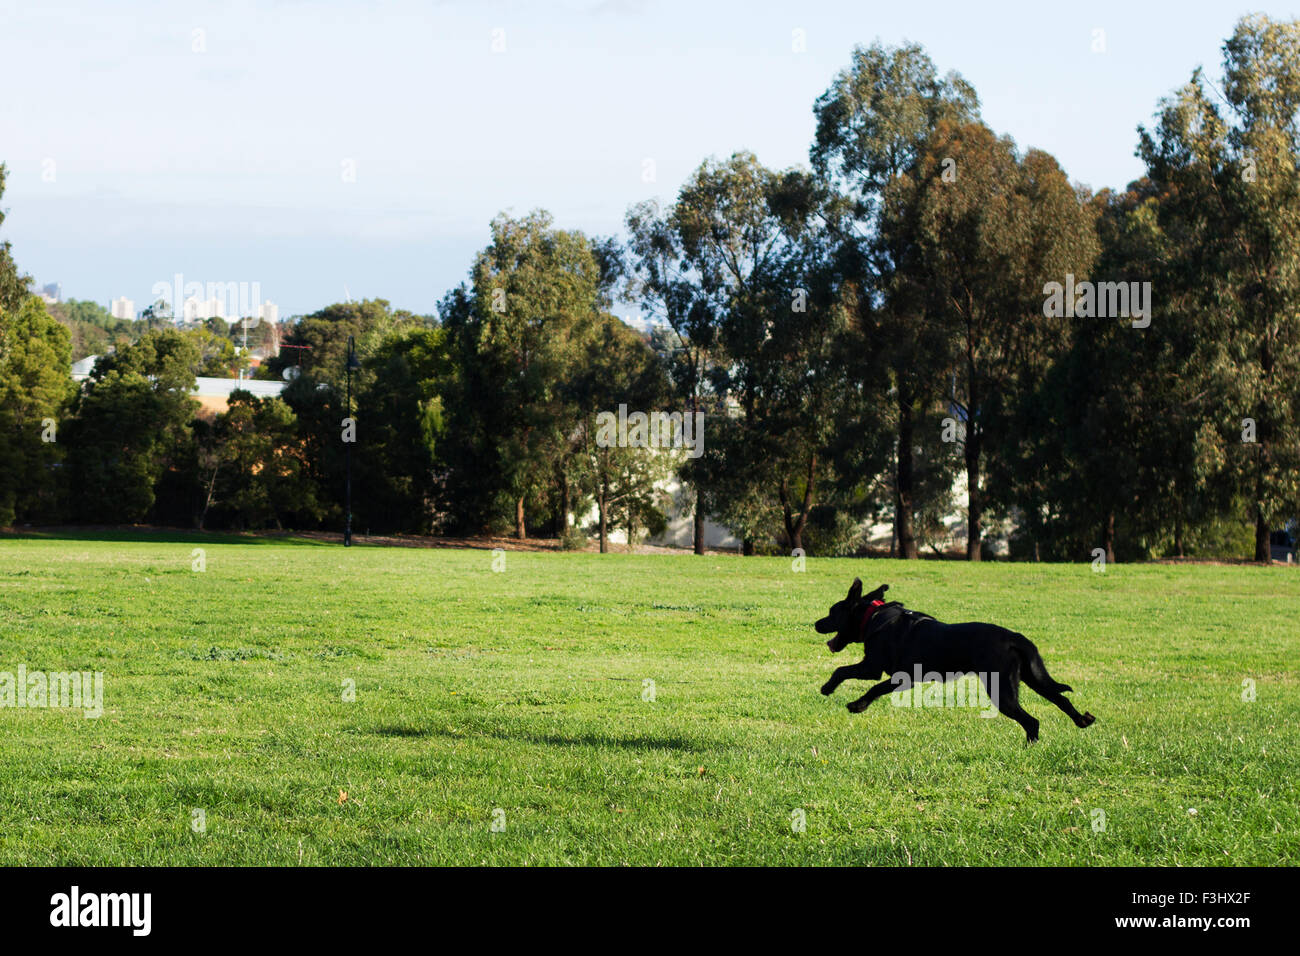 A black dog chases a ball through All Nations Park in Melbourne Australia. - Stock Image